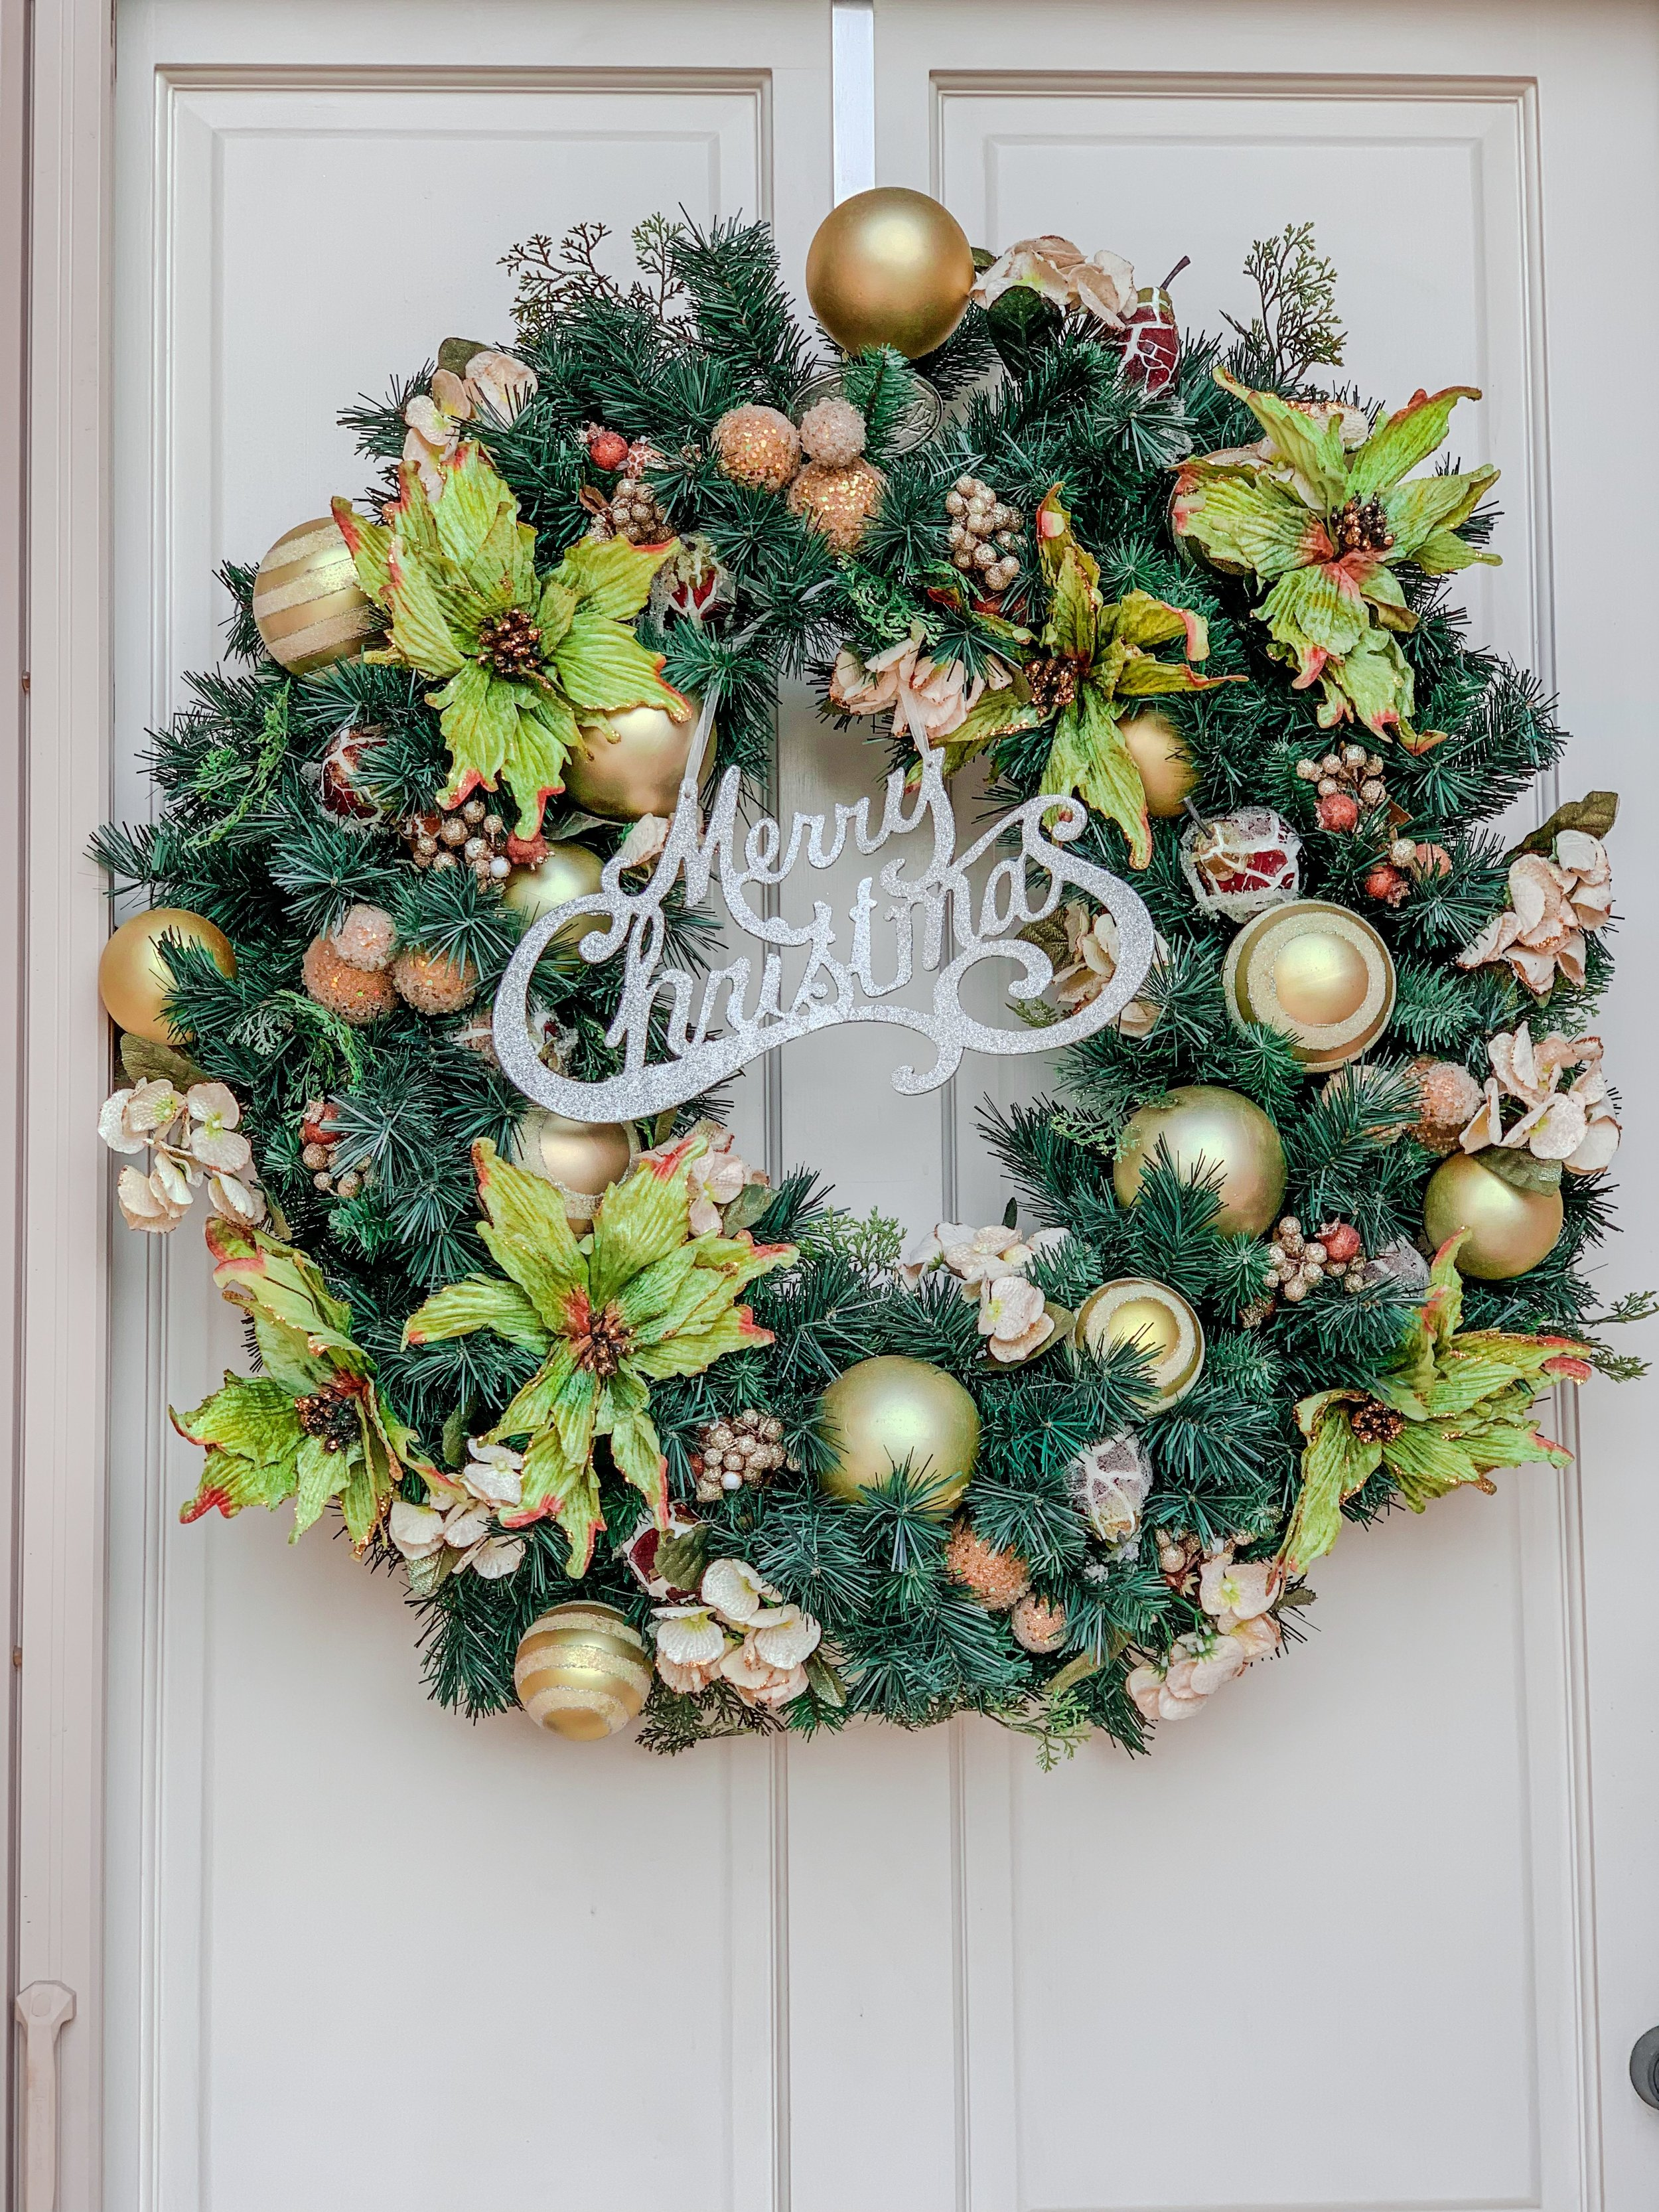 Wreath - Without lighting